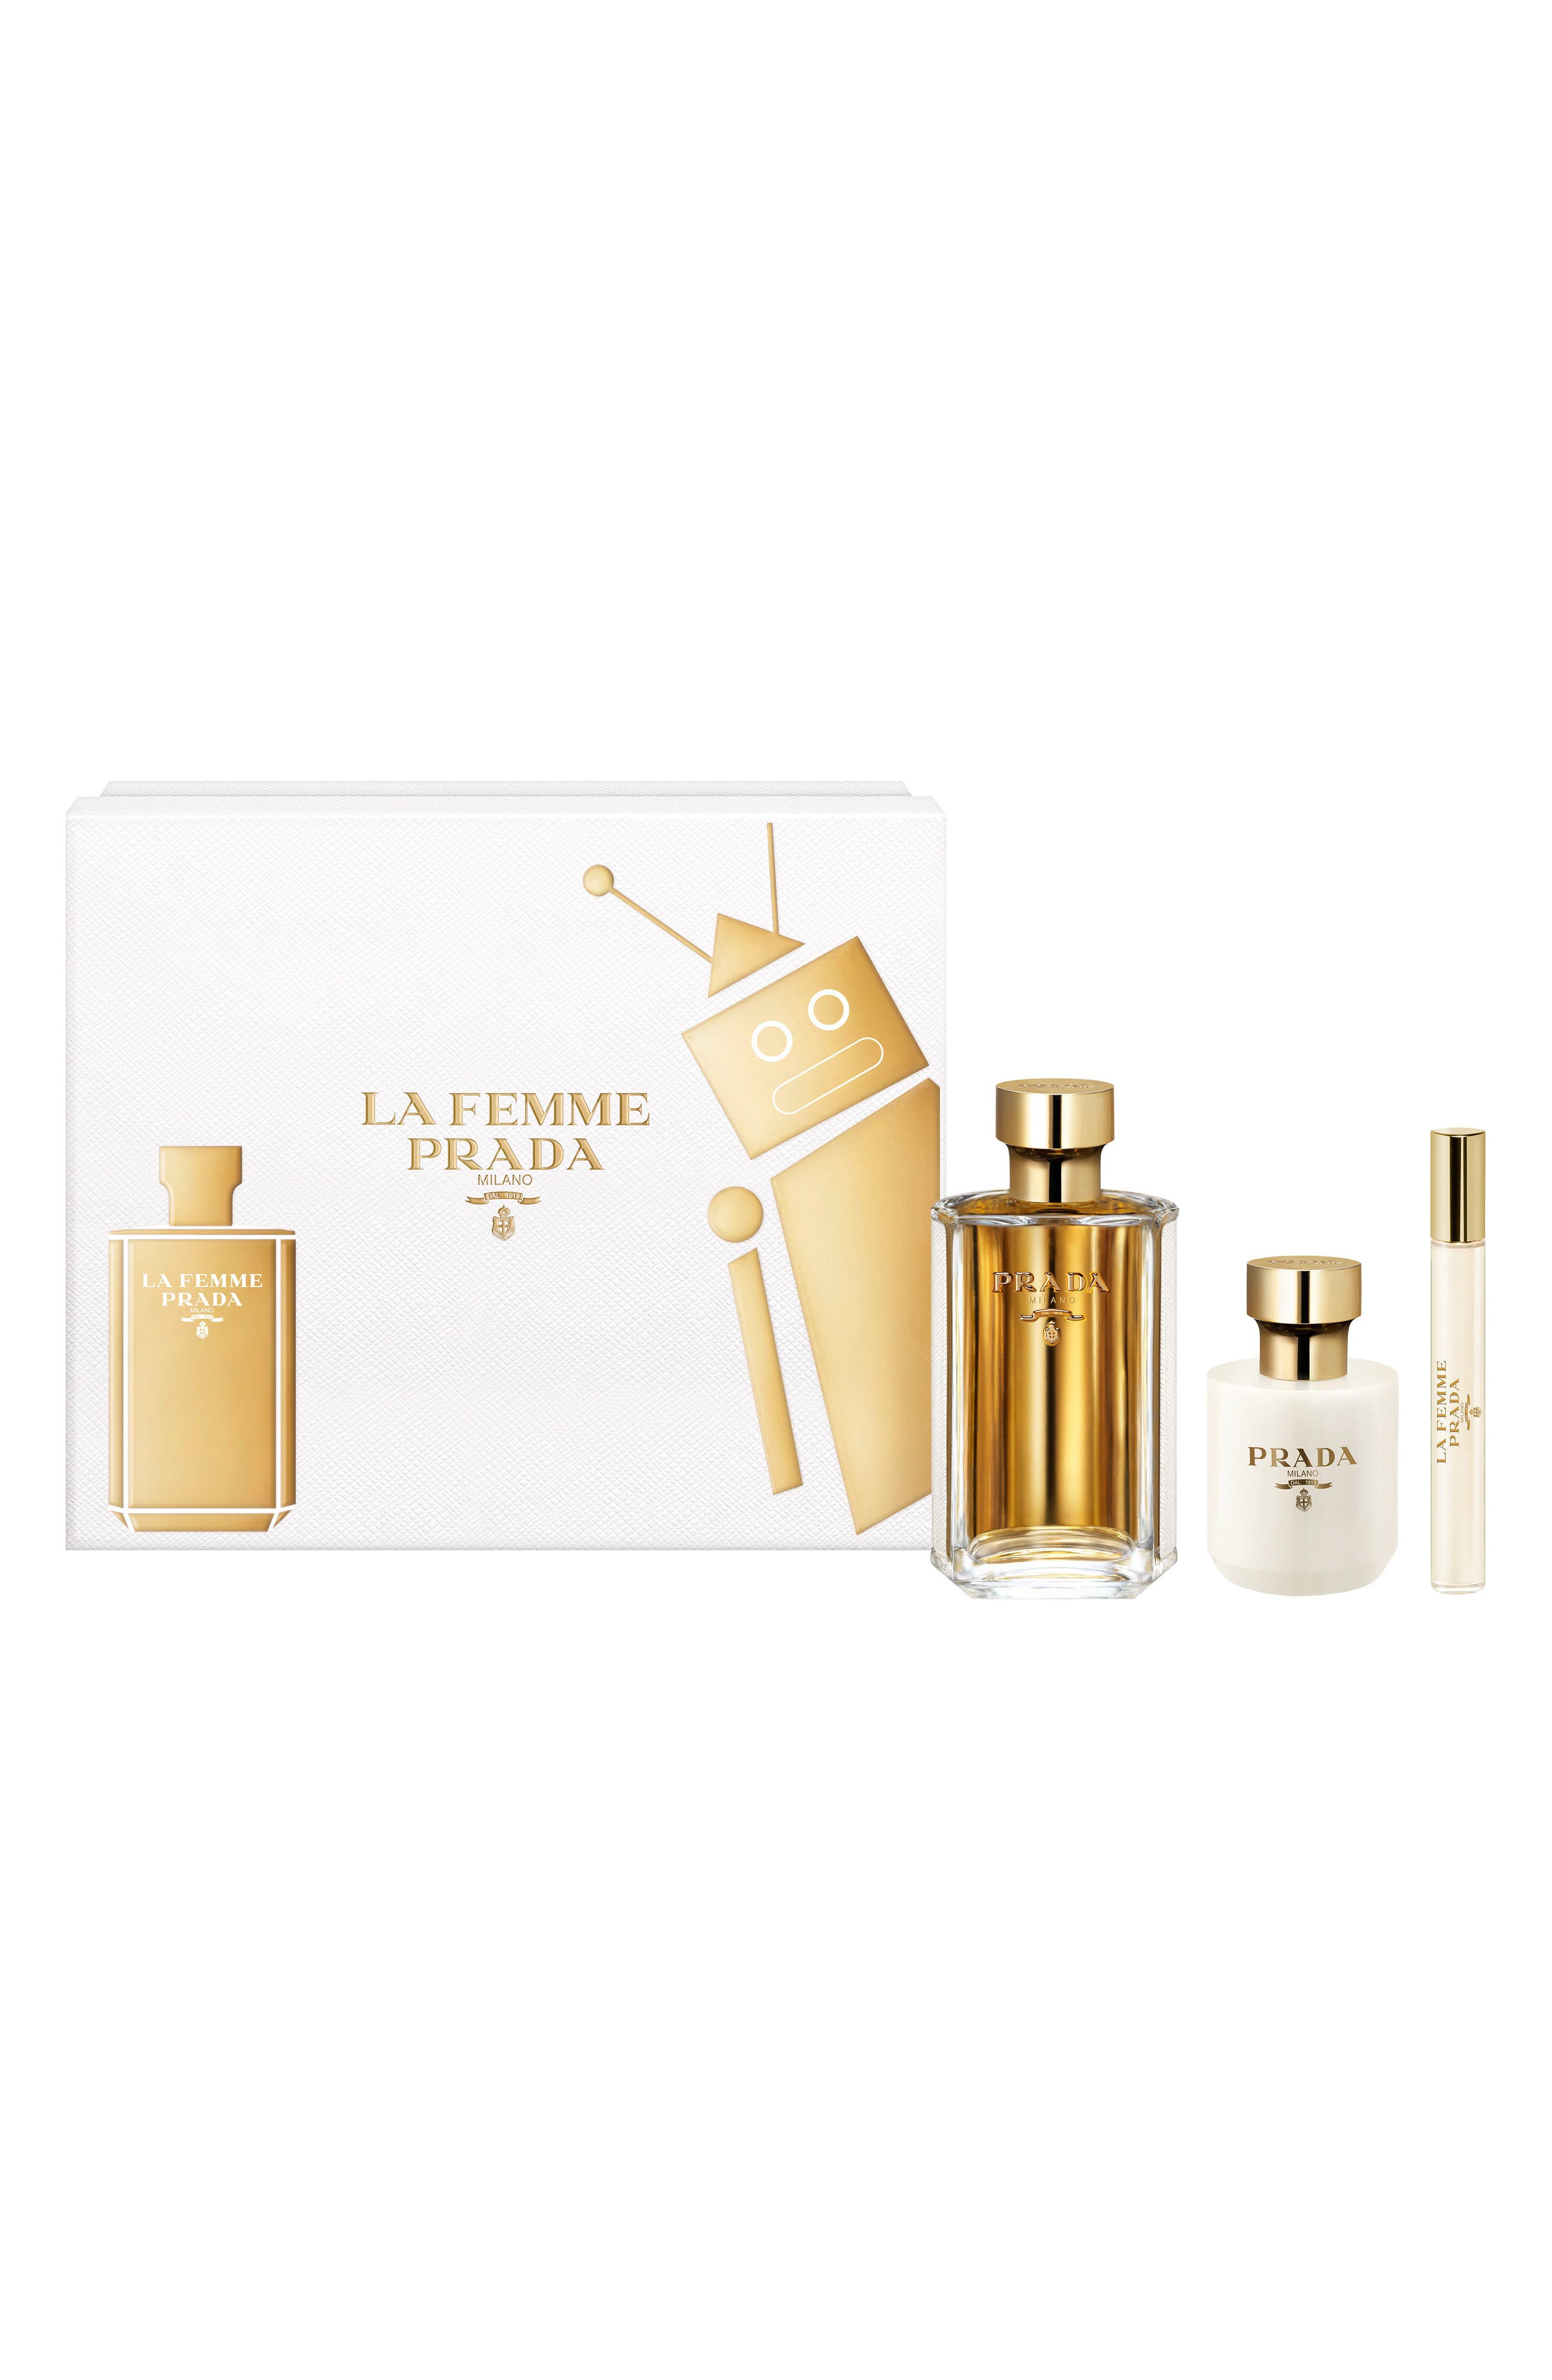 Prada La Femme Prada Set ($182 Value)